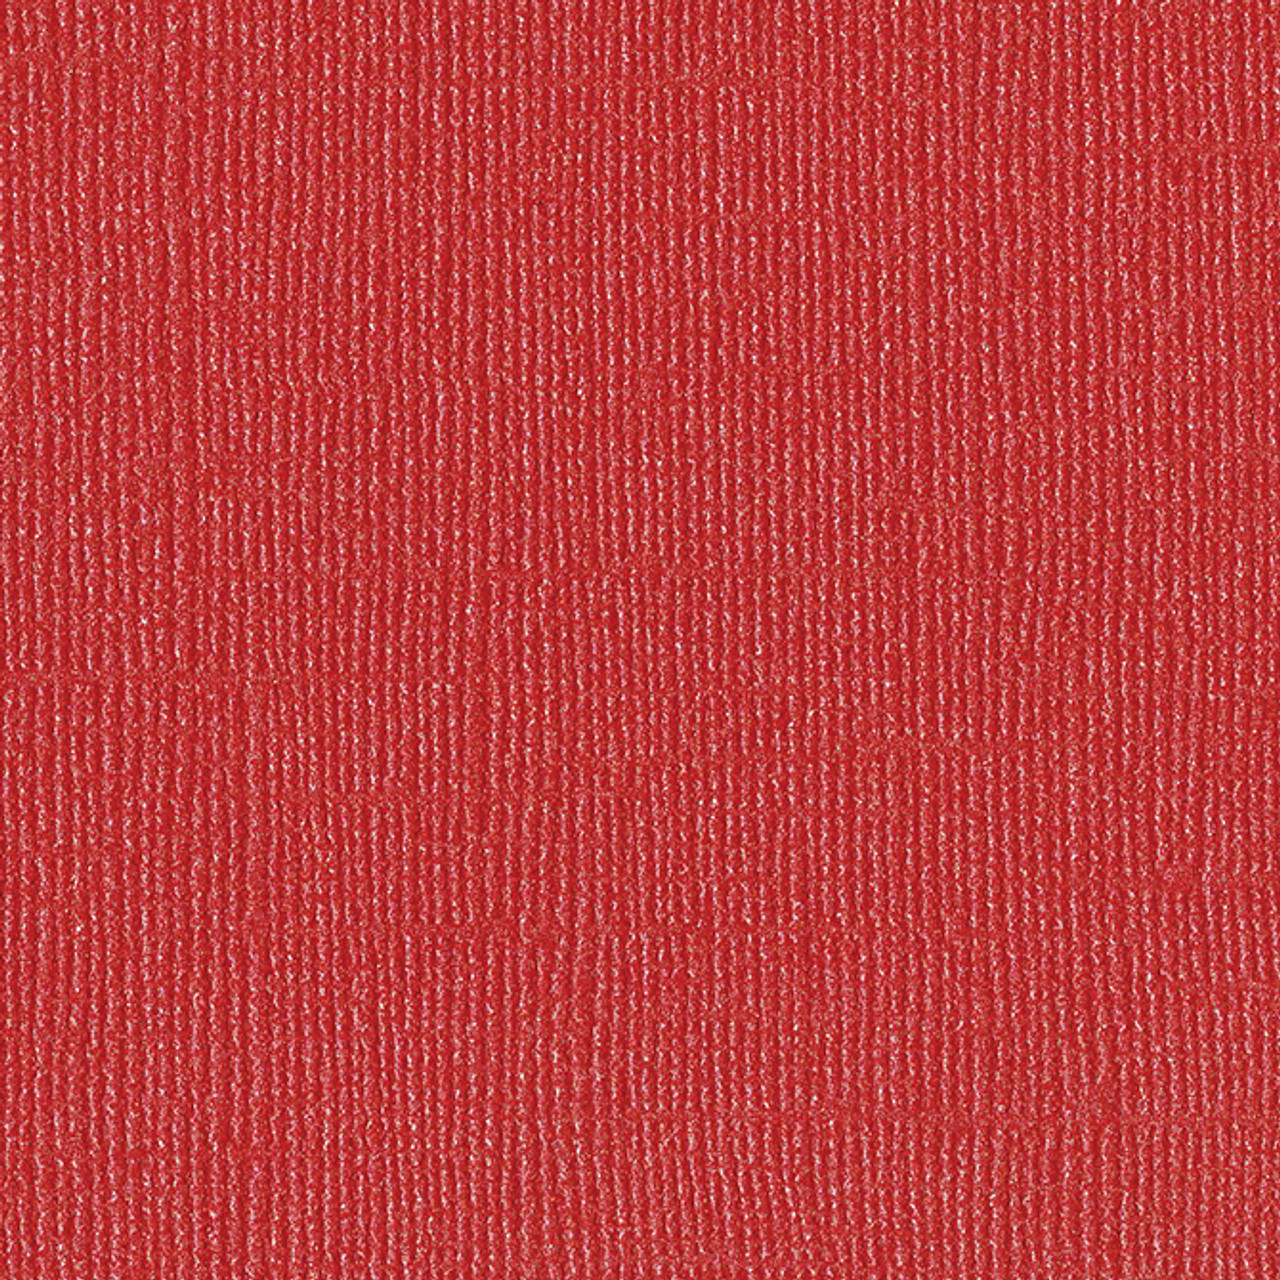 Bazzill Bling Luscious Red 12 x 12 Textured Shimmer Cardstock by Bazzill